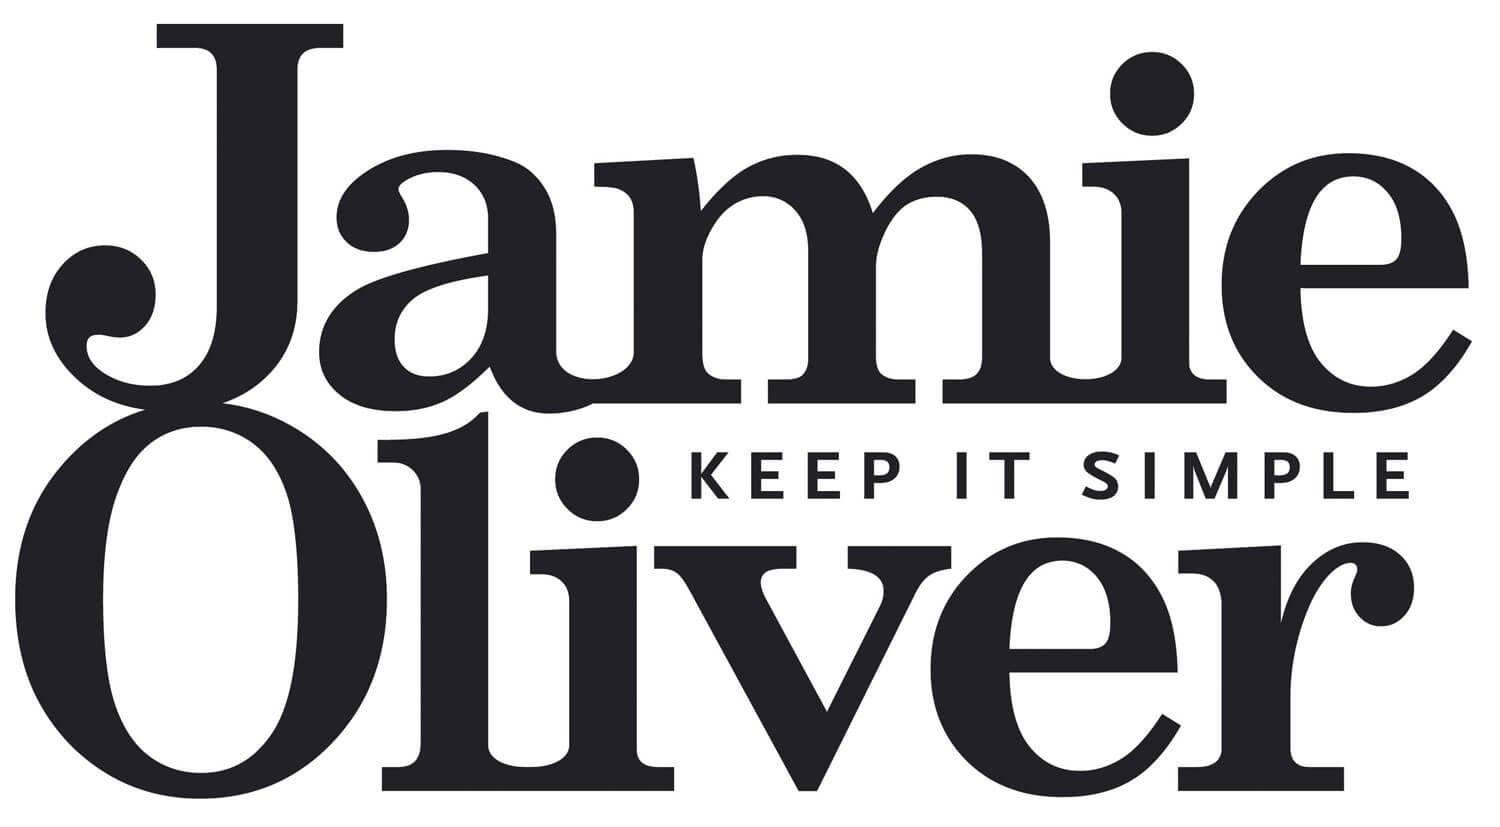 https://secureservercdn.net/198.71.233.153/c83.d41.myftpupload.com/wp-content/uploads/2010/11/Jamie-Oliver-Logo-Low-Res.jpg